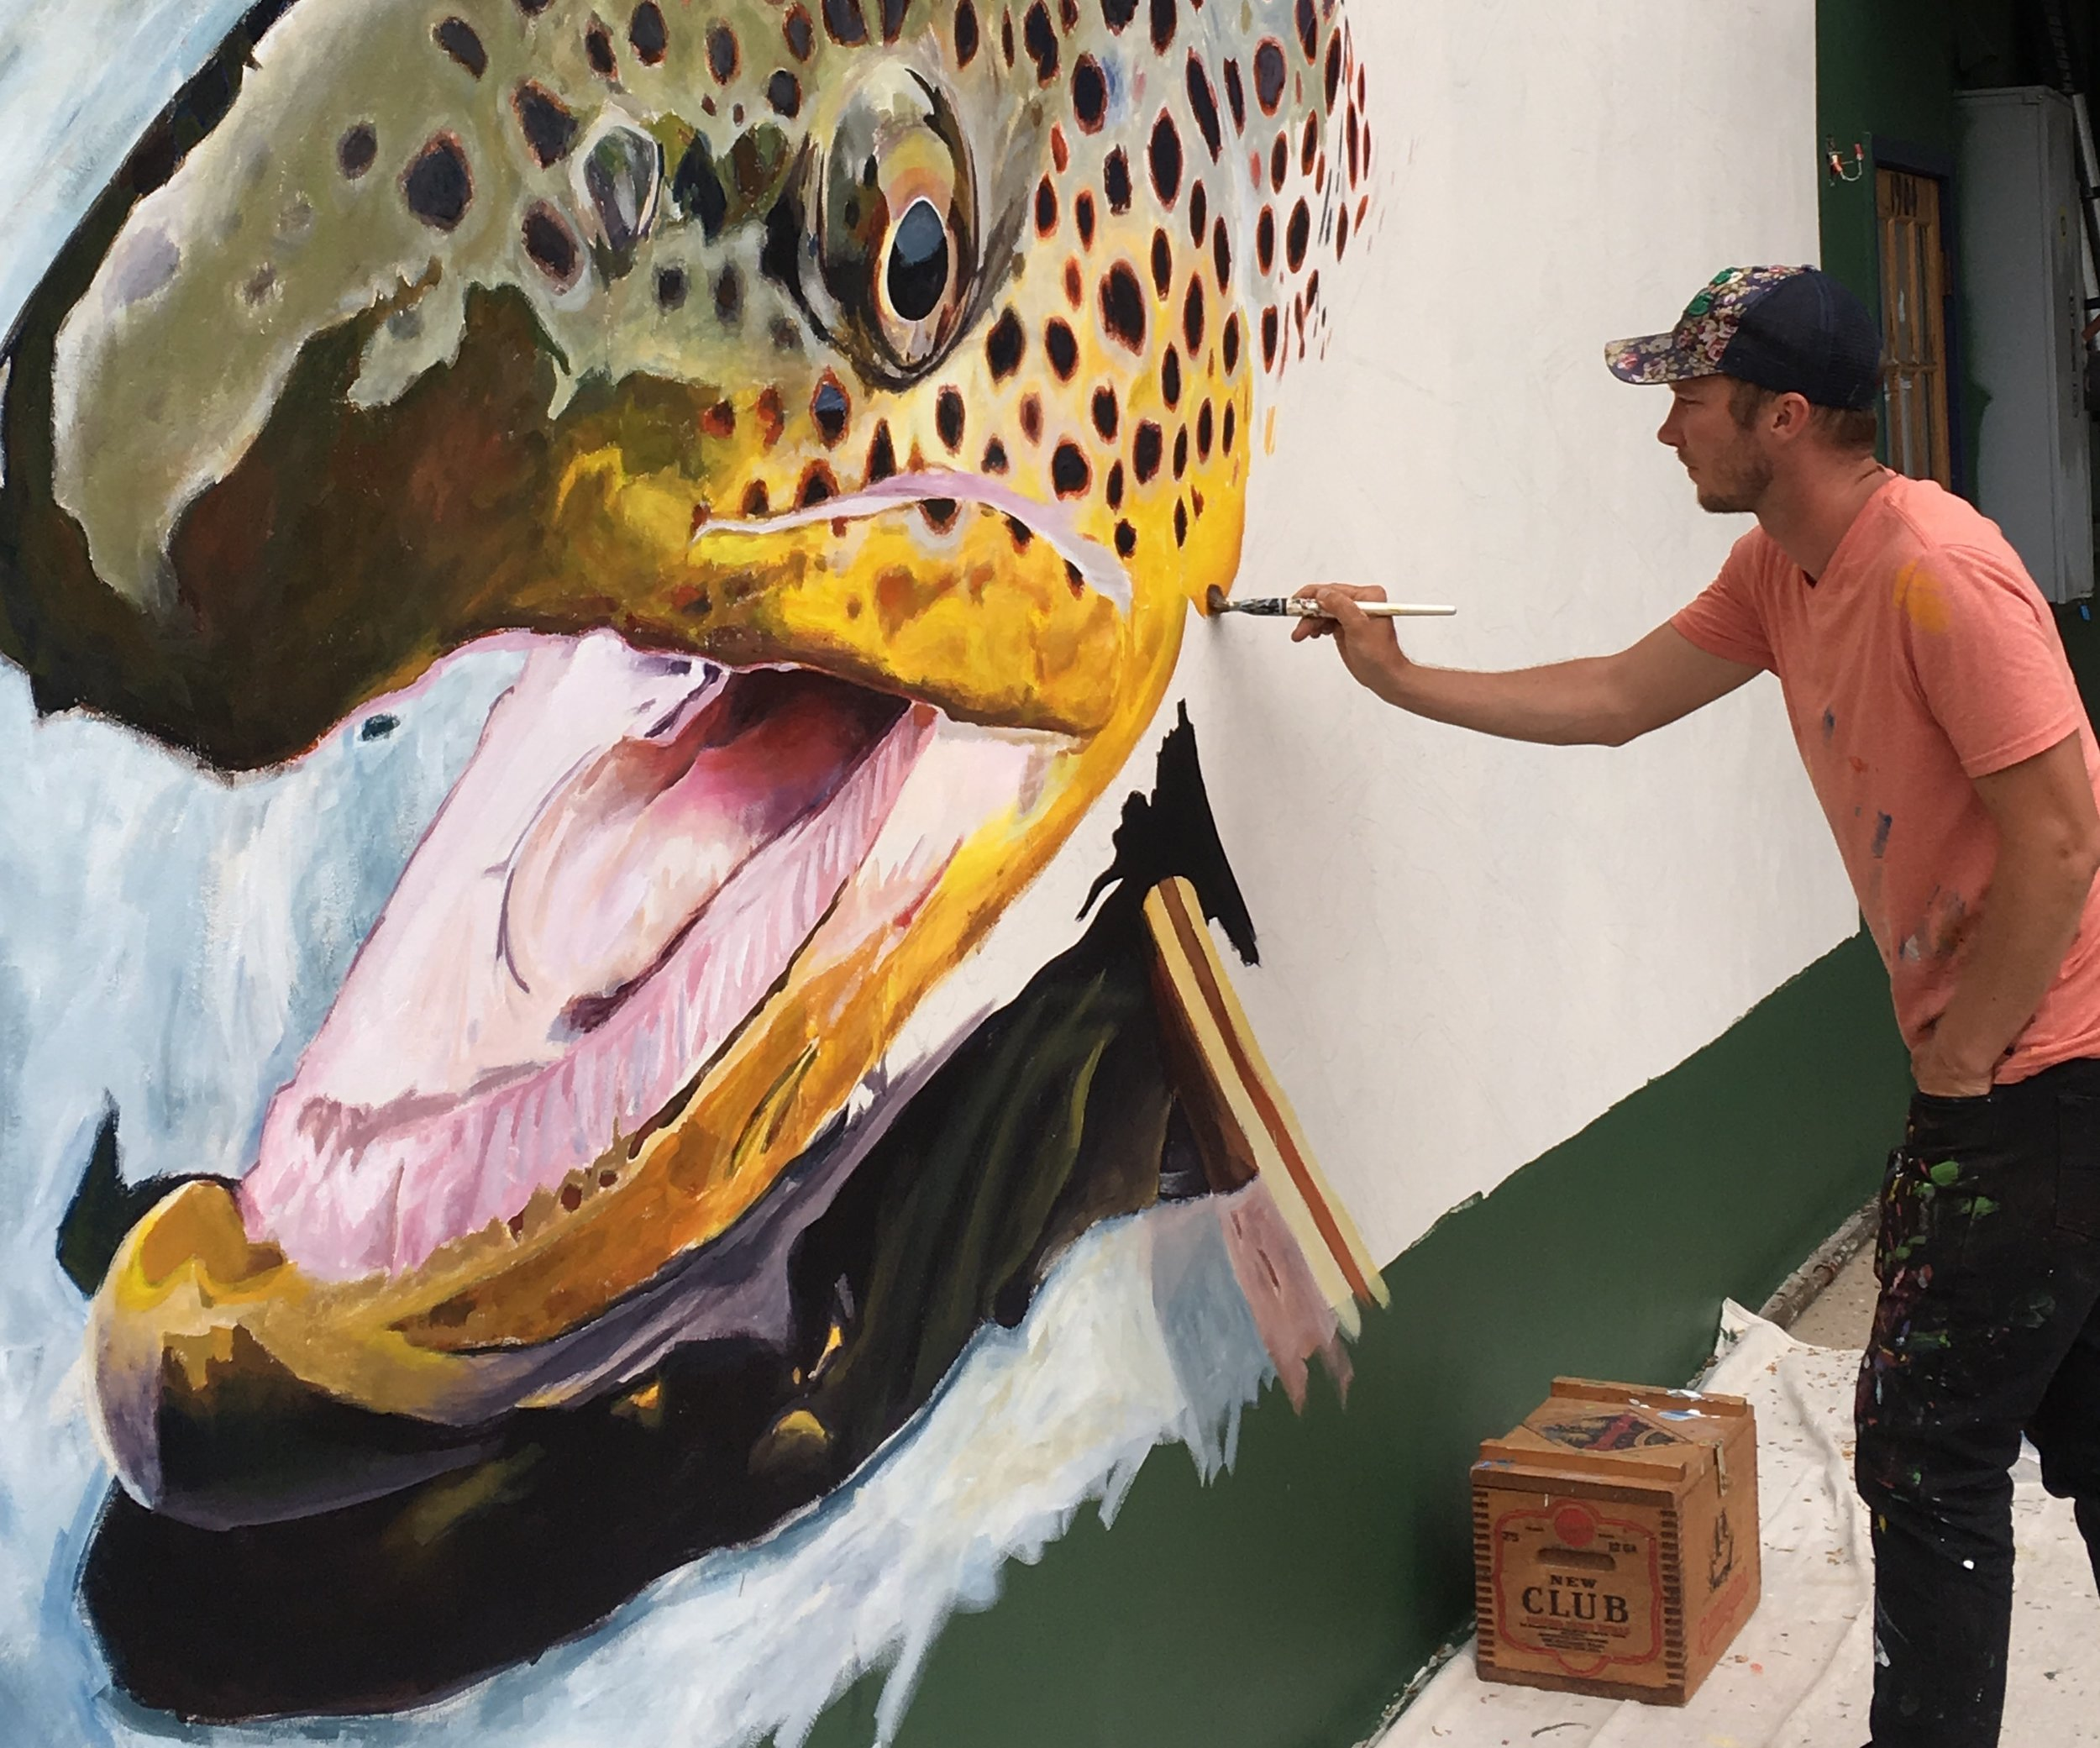 Remington painting a mural in Boulder, CO, May 2018.